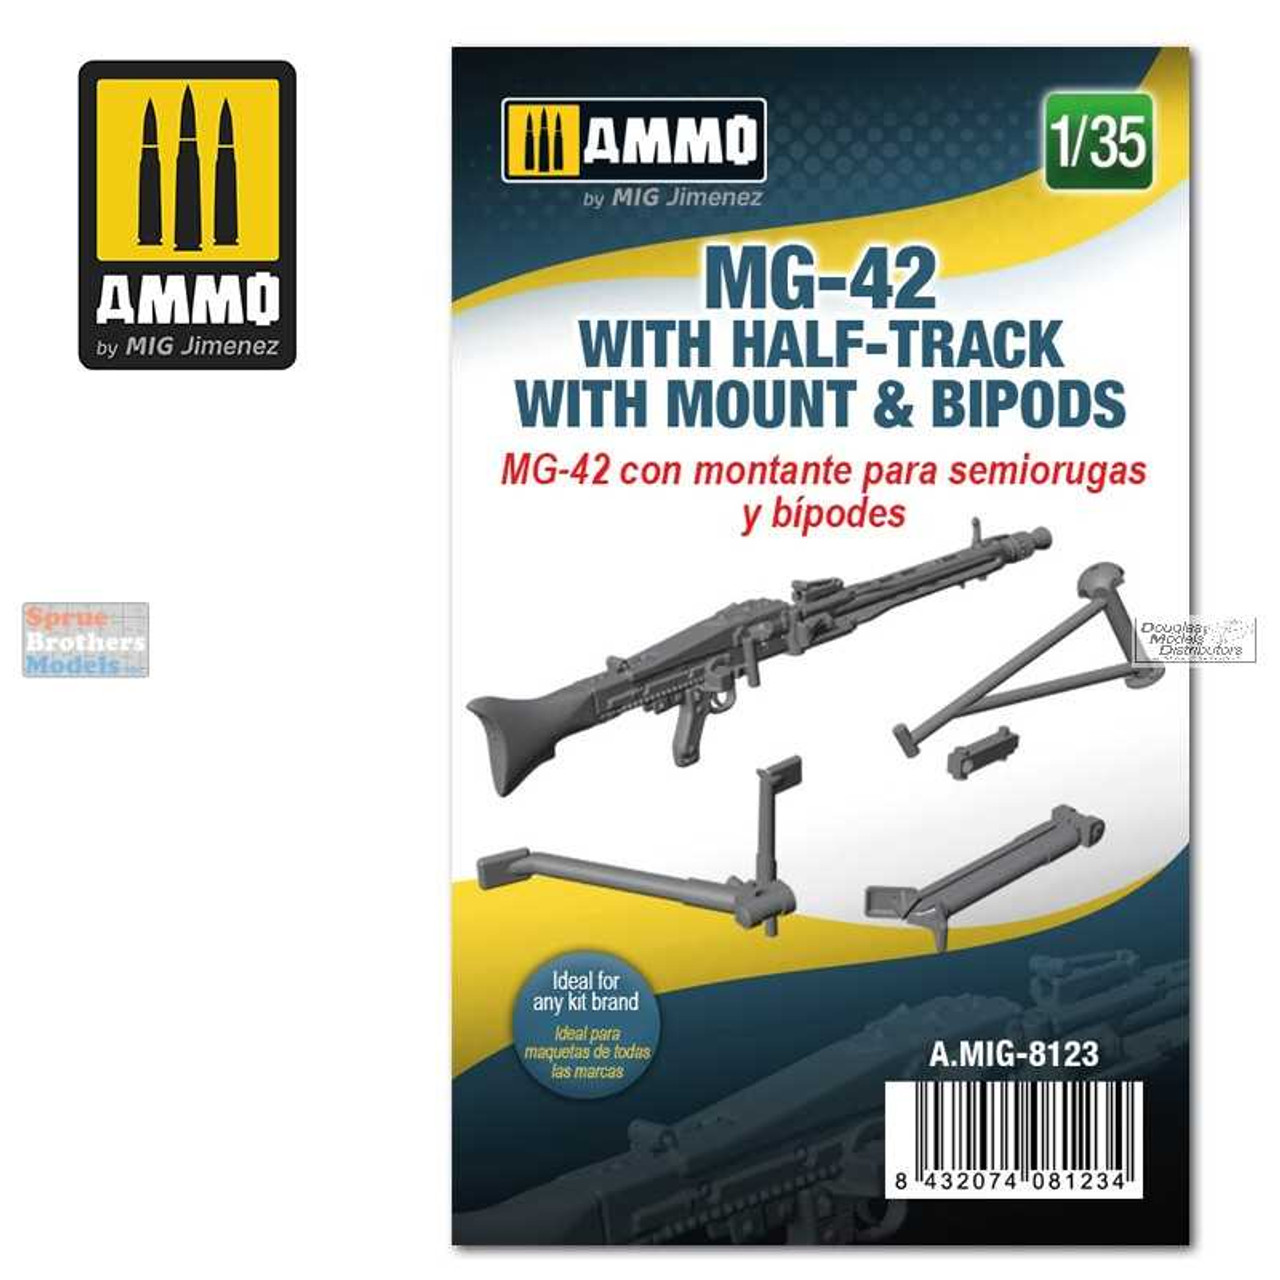 AMM8123 1:35 AMMO by Mig MG-42 with Half-Track with Mount & Bipods